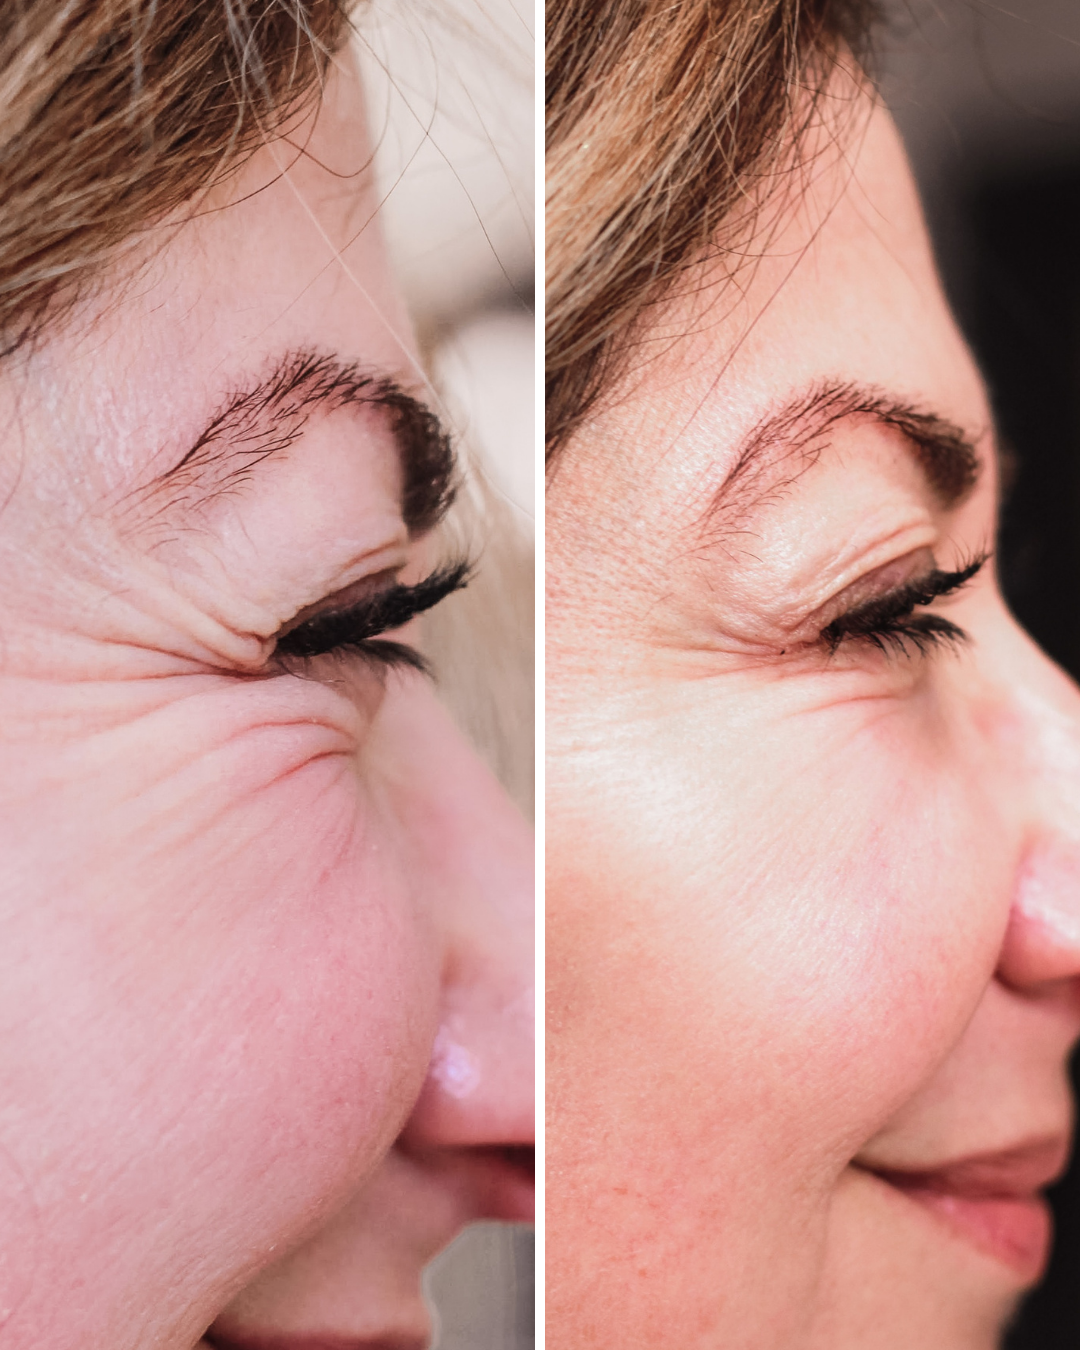 Botox over 40, before and after botox, getting botox done, cost of botox, does botox hurt, crows feet gone after botox